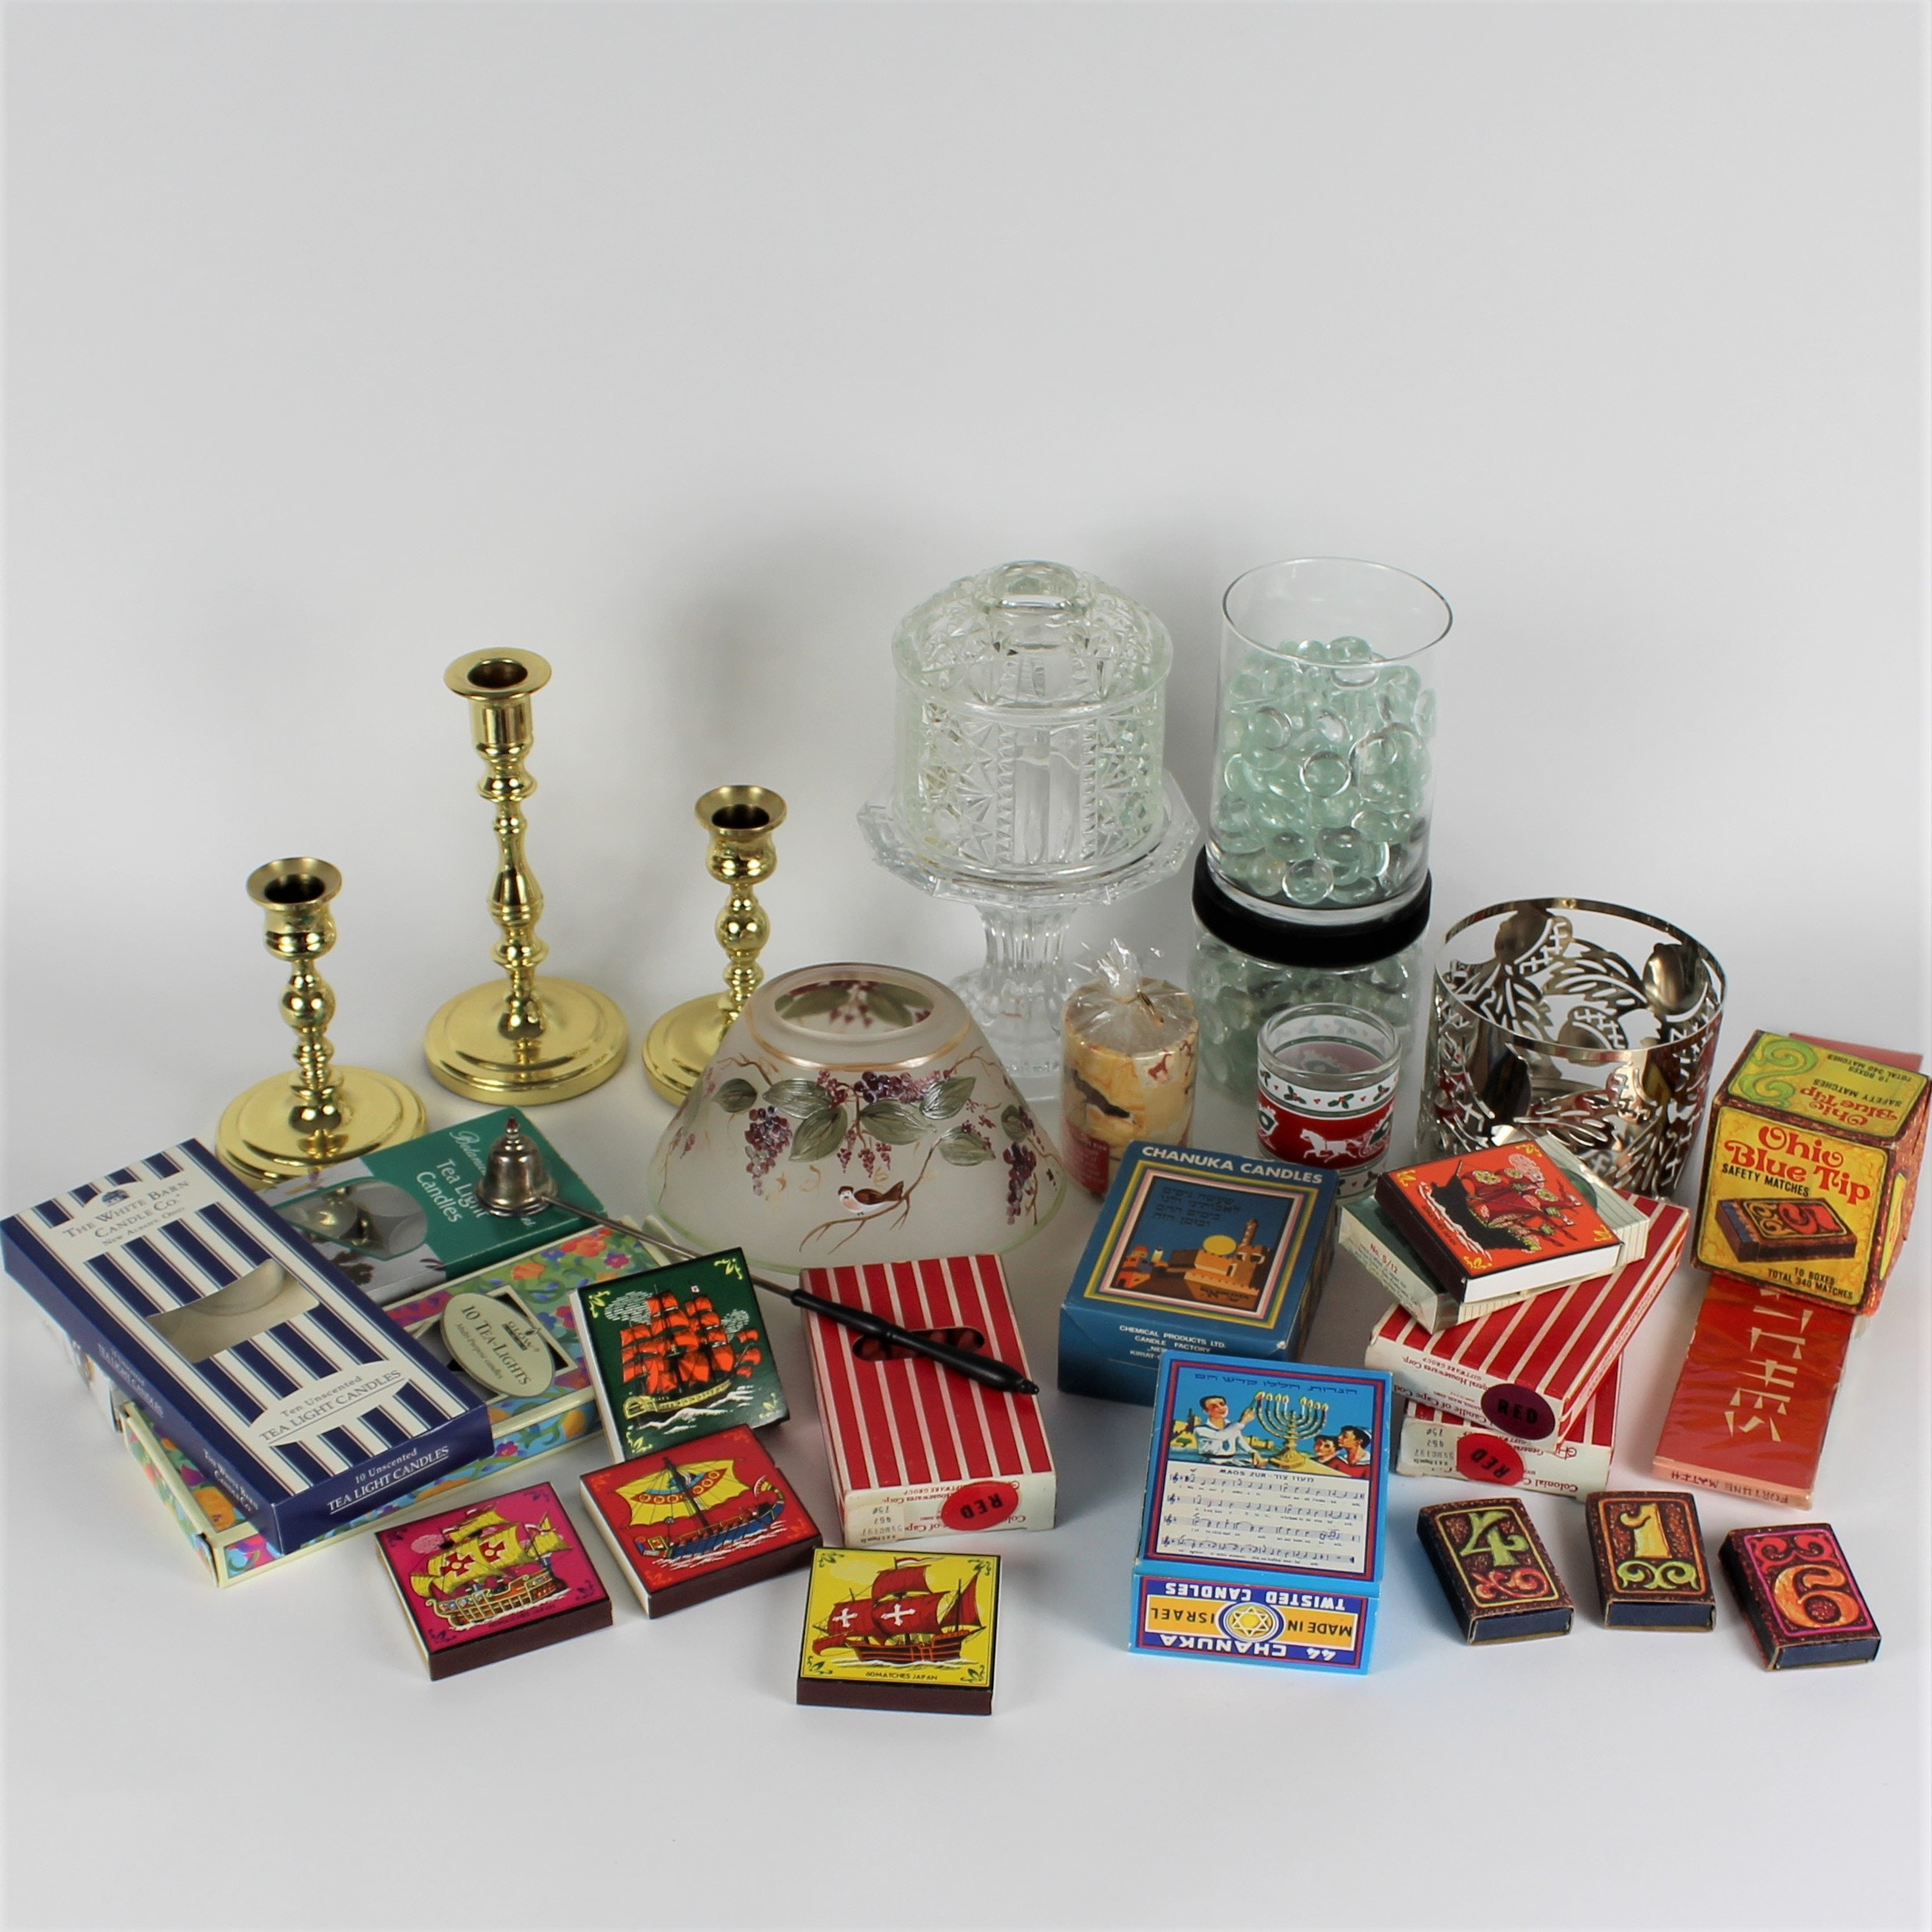 Baldwin Brass Candleholders, Collector's Matches and More